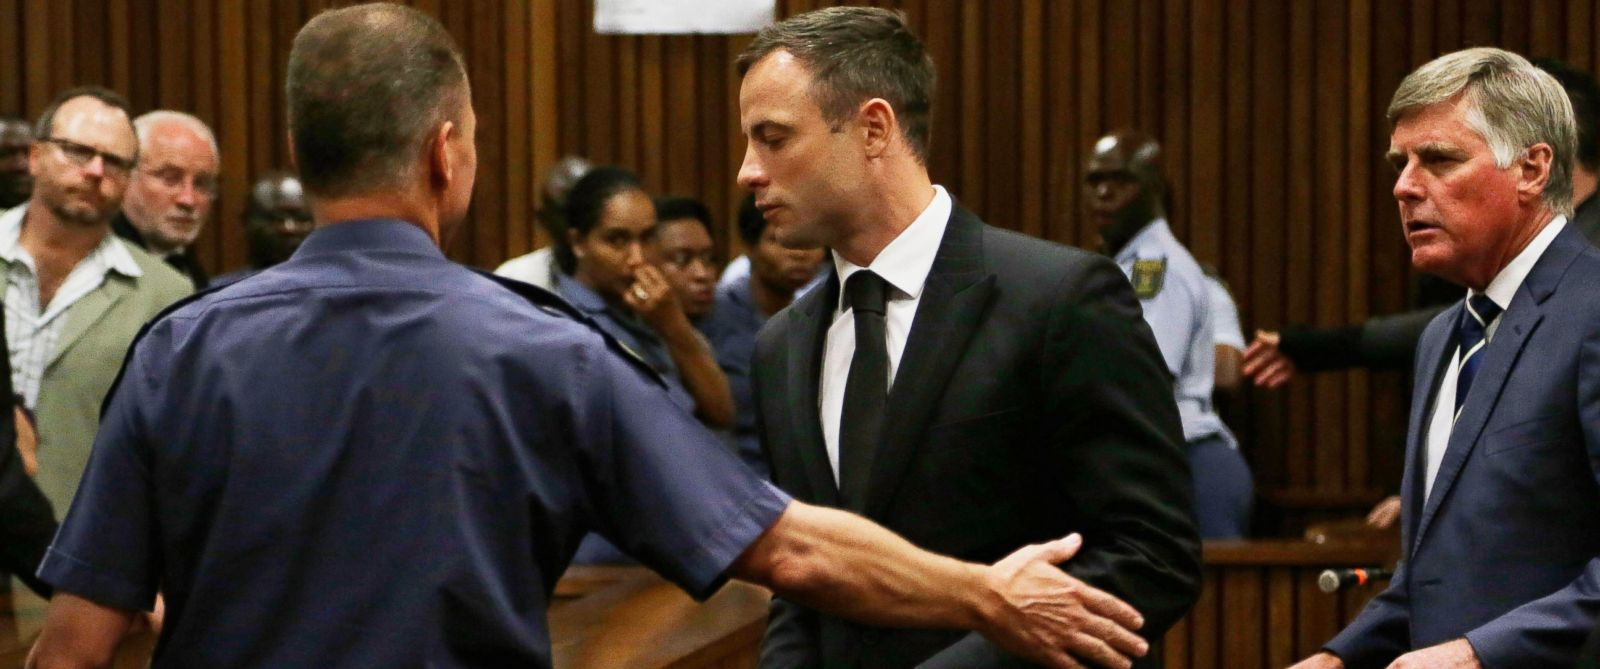 PHOTO: Oscar Pistorius, center, is led out of court in Pretoria, South Africa, Oct. 21, 2014.